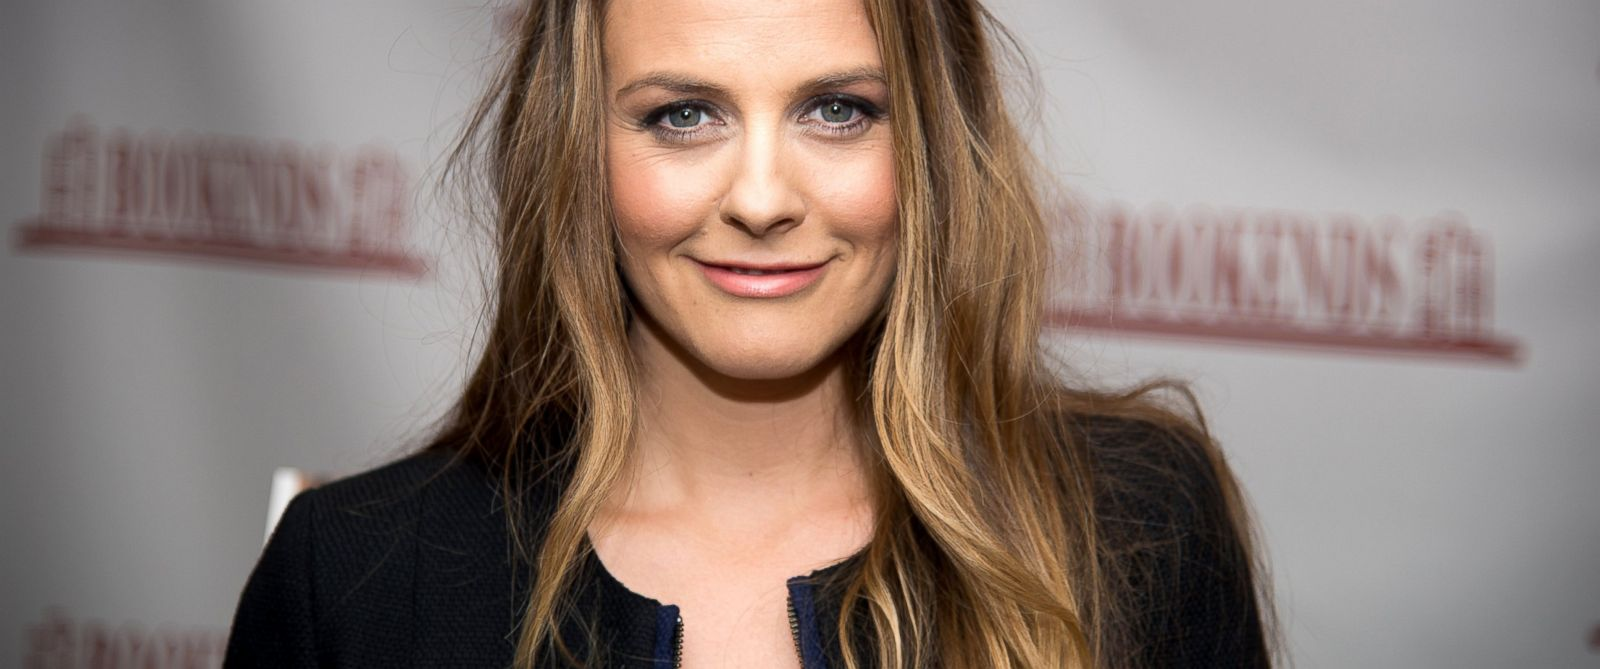 """PHOTO: Alicia Silverstone arrives to the book signing for her new book, """"The Kind Mamma,"""" at Bookends Bookstore, April 14, 2014, in Ridgewood, N.J."""